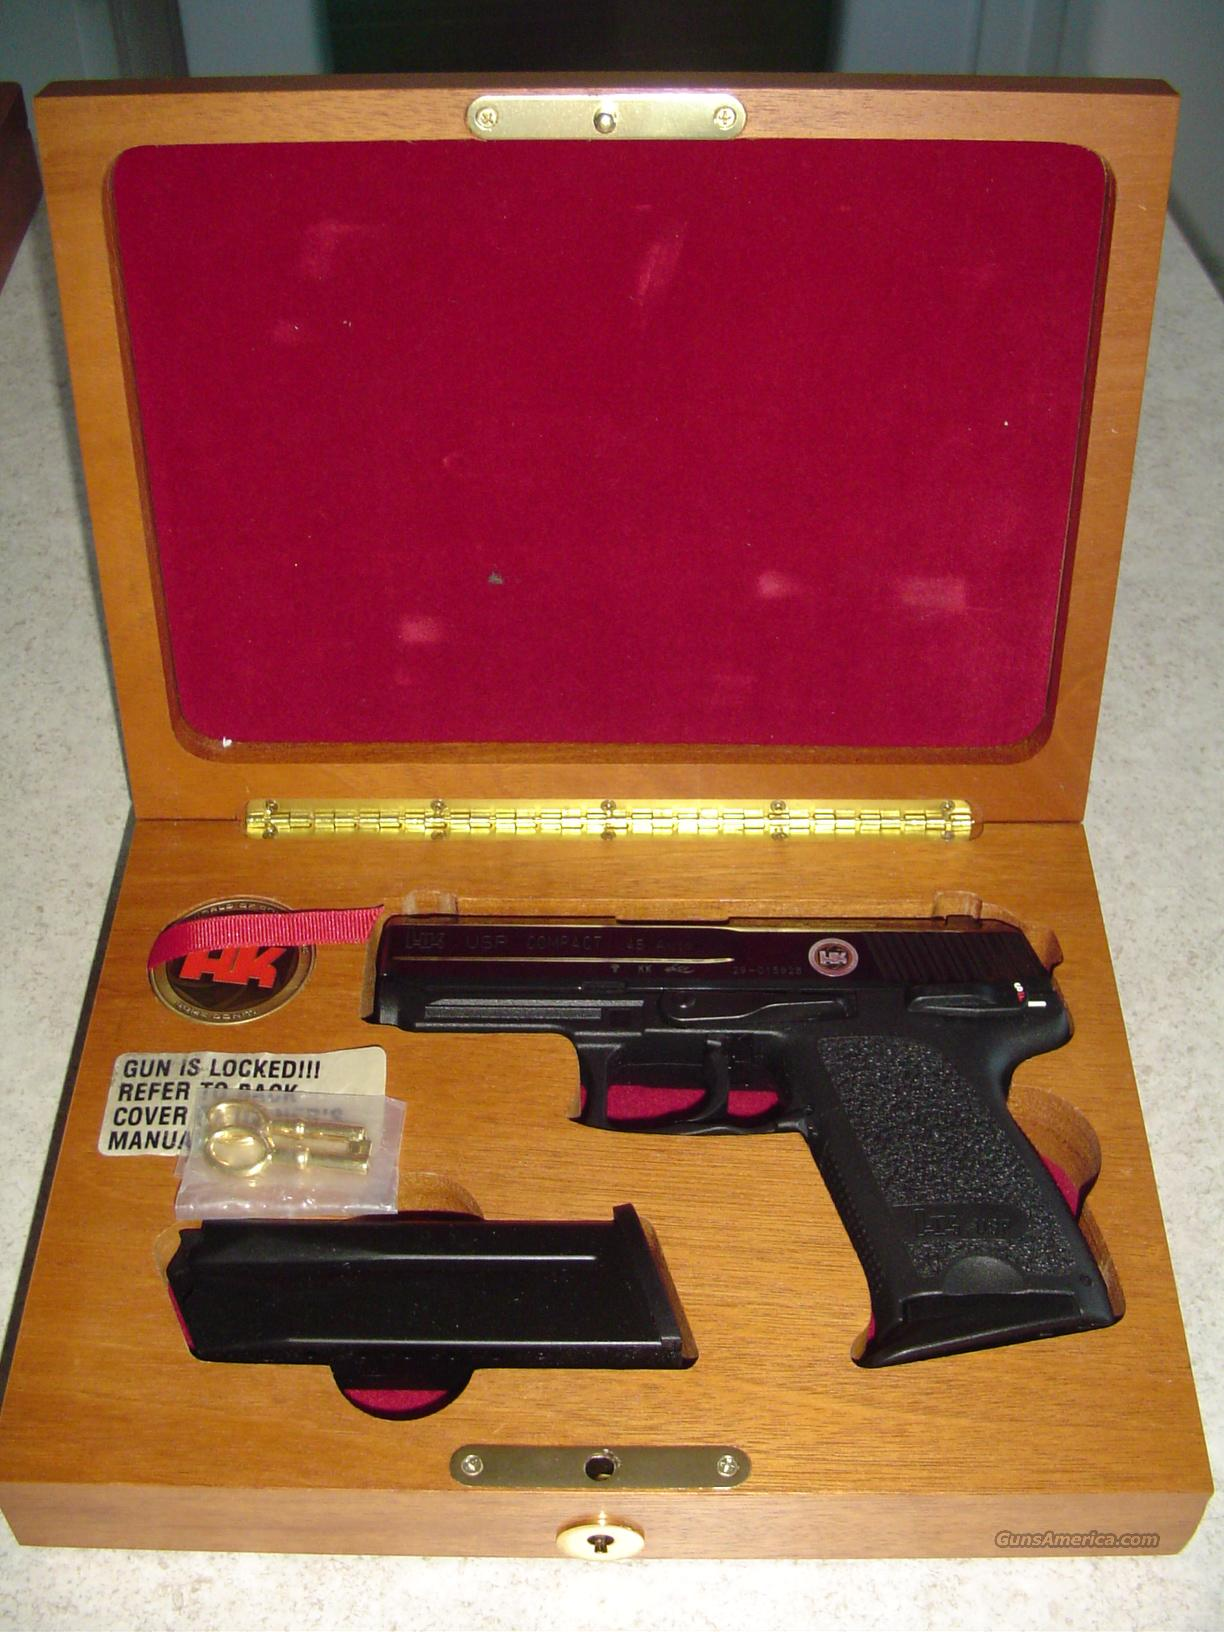 NEW IN BOX HK USP COMPACT 45 - 50TH ANNIVERSARY 1 OF 1000 MADE W/CASED WOODEN BOX  Guns > Pistols > Heckler & Koch Pistols > Polymer Frame